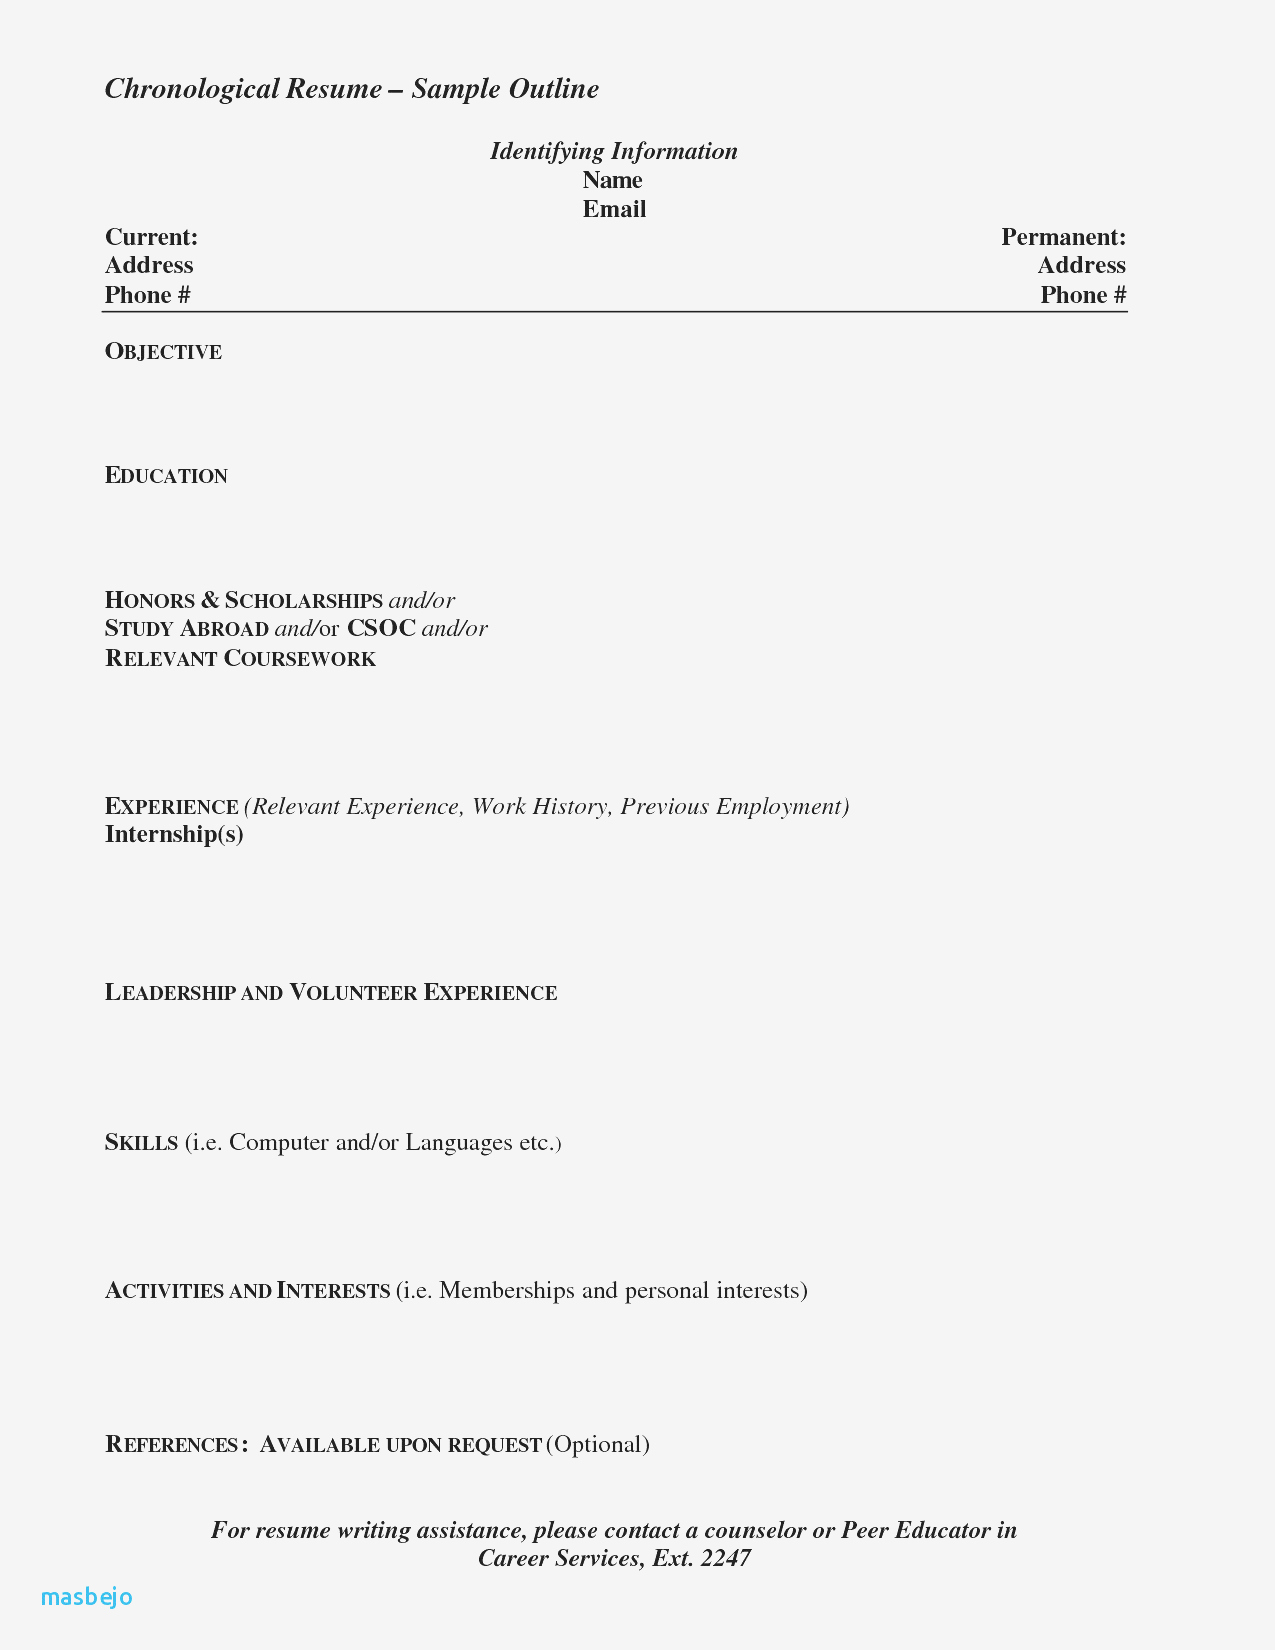 Resume for Car Salesman - Car Sales Resume Sample